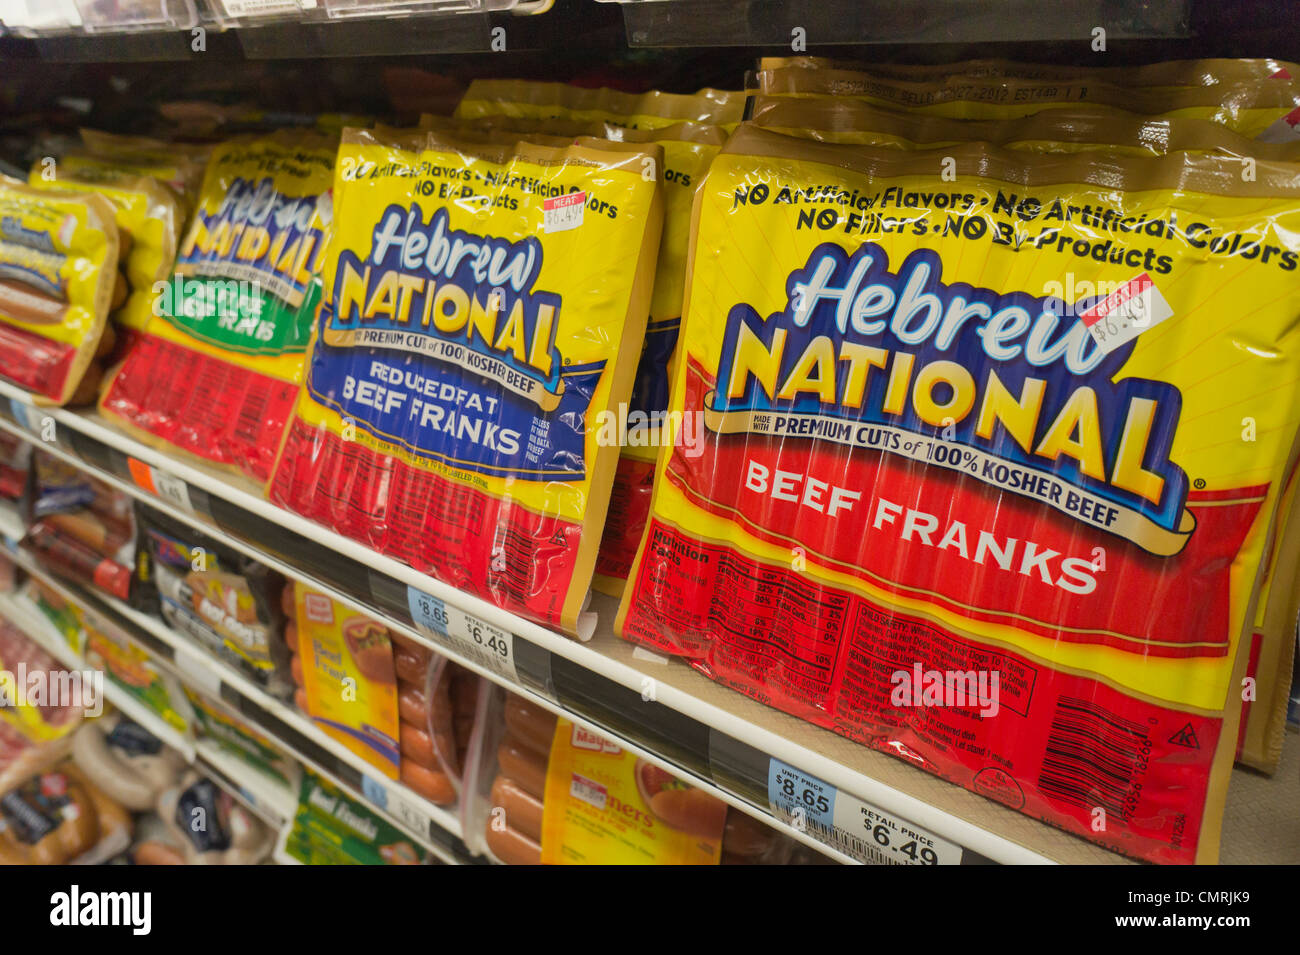 Packages of Hebrew National franks are seen in a supermarket cooler in New York - Stock Image